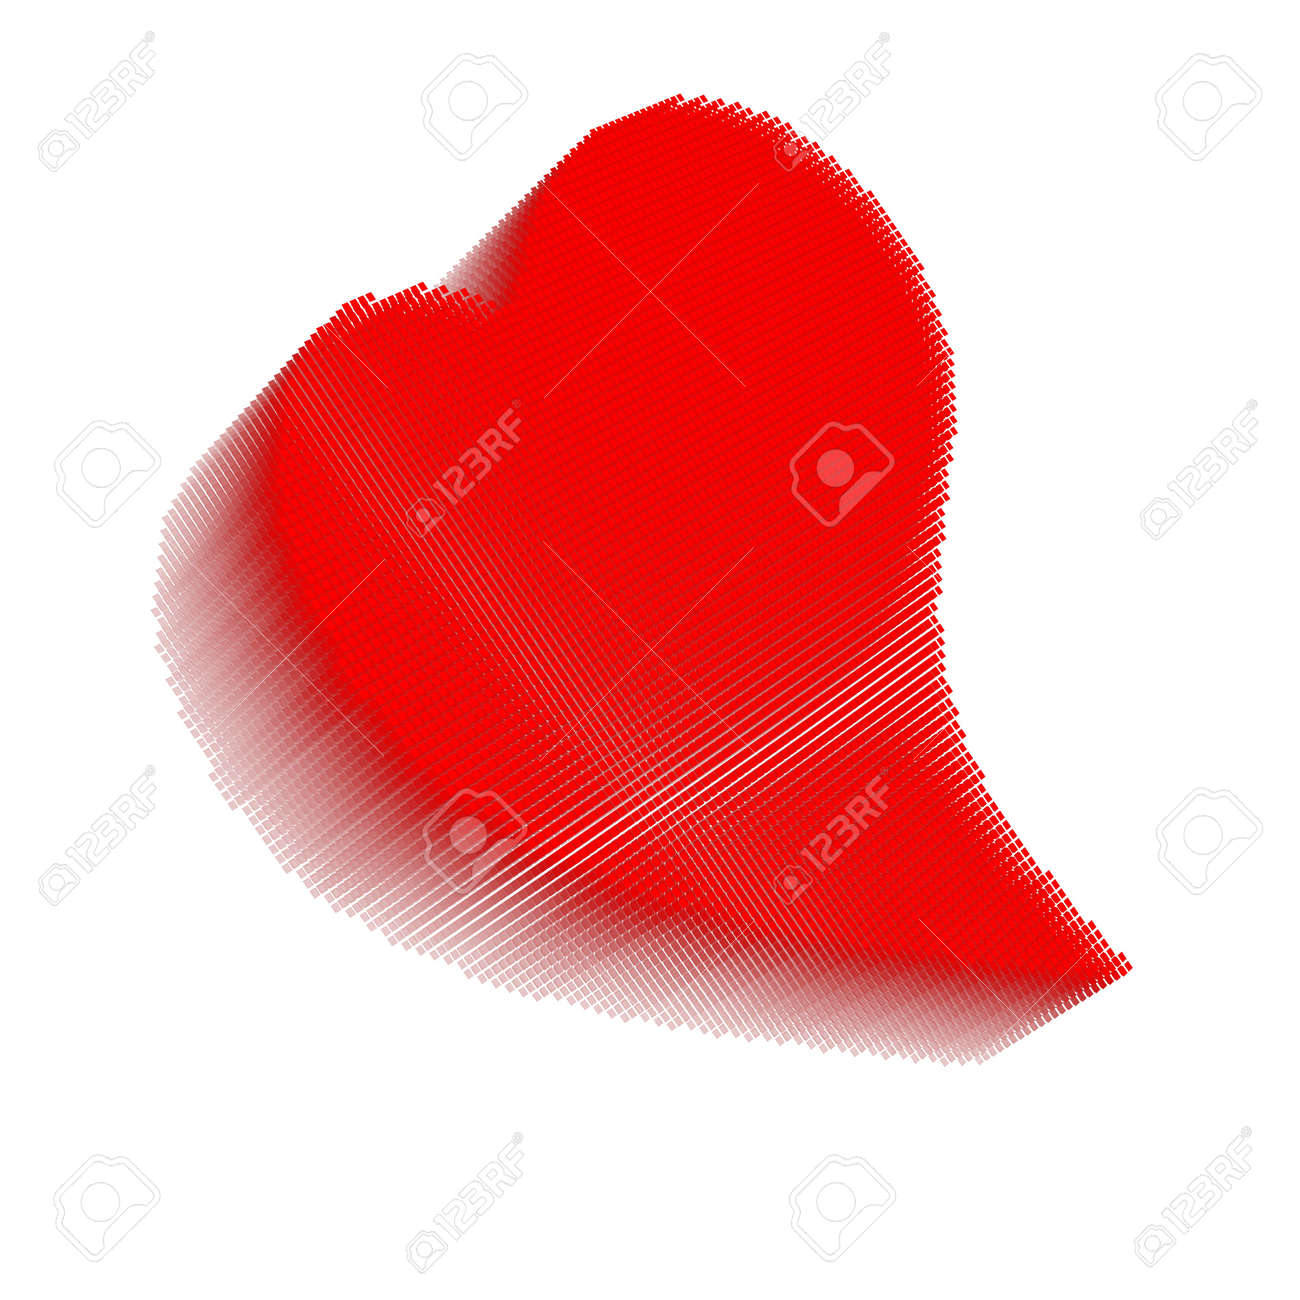 Red pixel icon-like three-dimensional image of bent heart on white background in diagonal view Stock Photo - 16460123